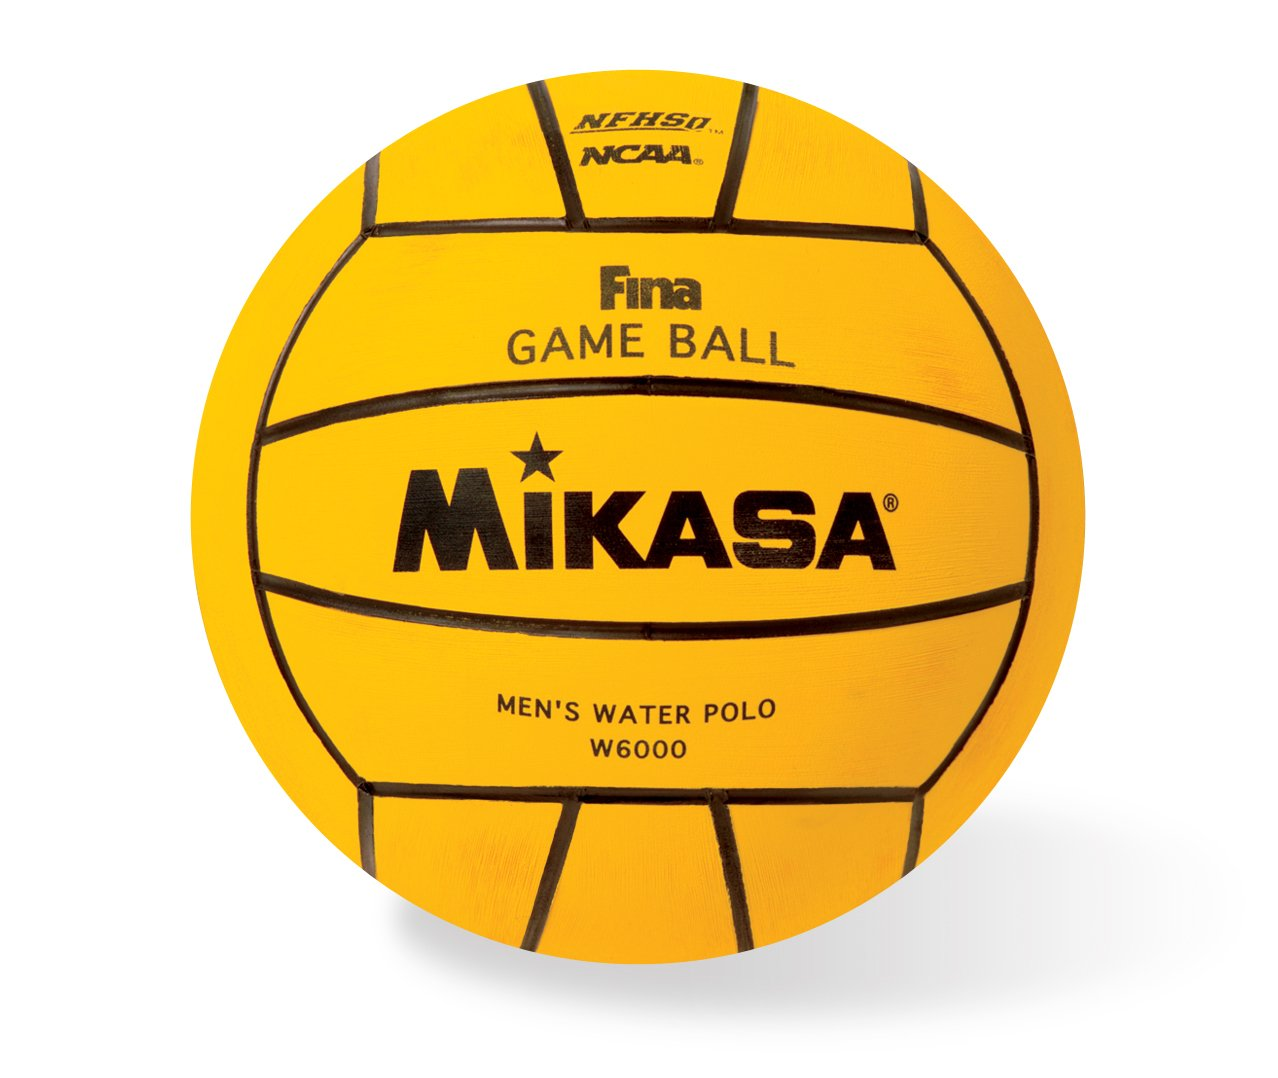 Opinions on Water polo ball